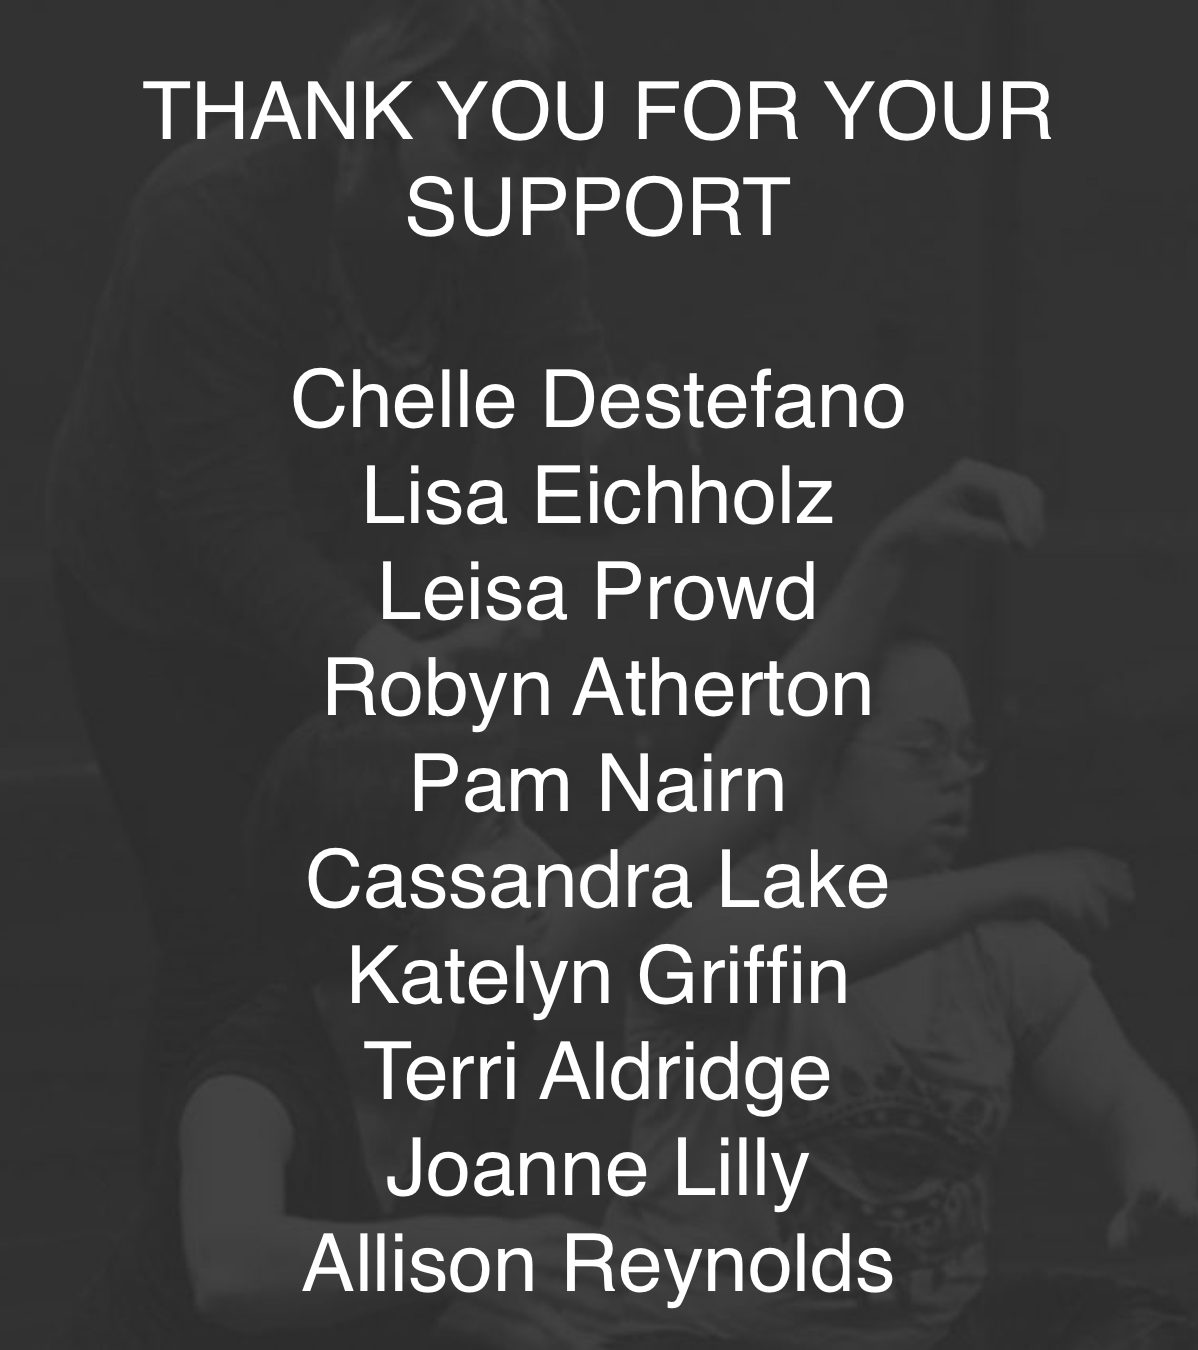 Grey background with white text reading: Thank you for your support. Chelle Destefano, Lisa Eichholz, Leisa Prowd, Robyn Atherton, Pam Nairn, Cassandra Lake, Katelyn Griffin, Terri Aldridge, Joanne Lilly, Allison Reynolds.